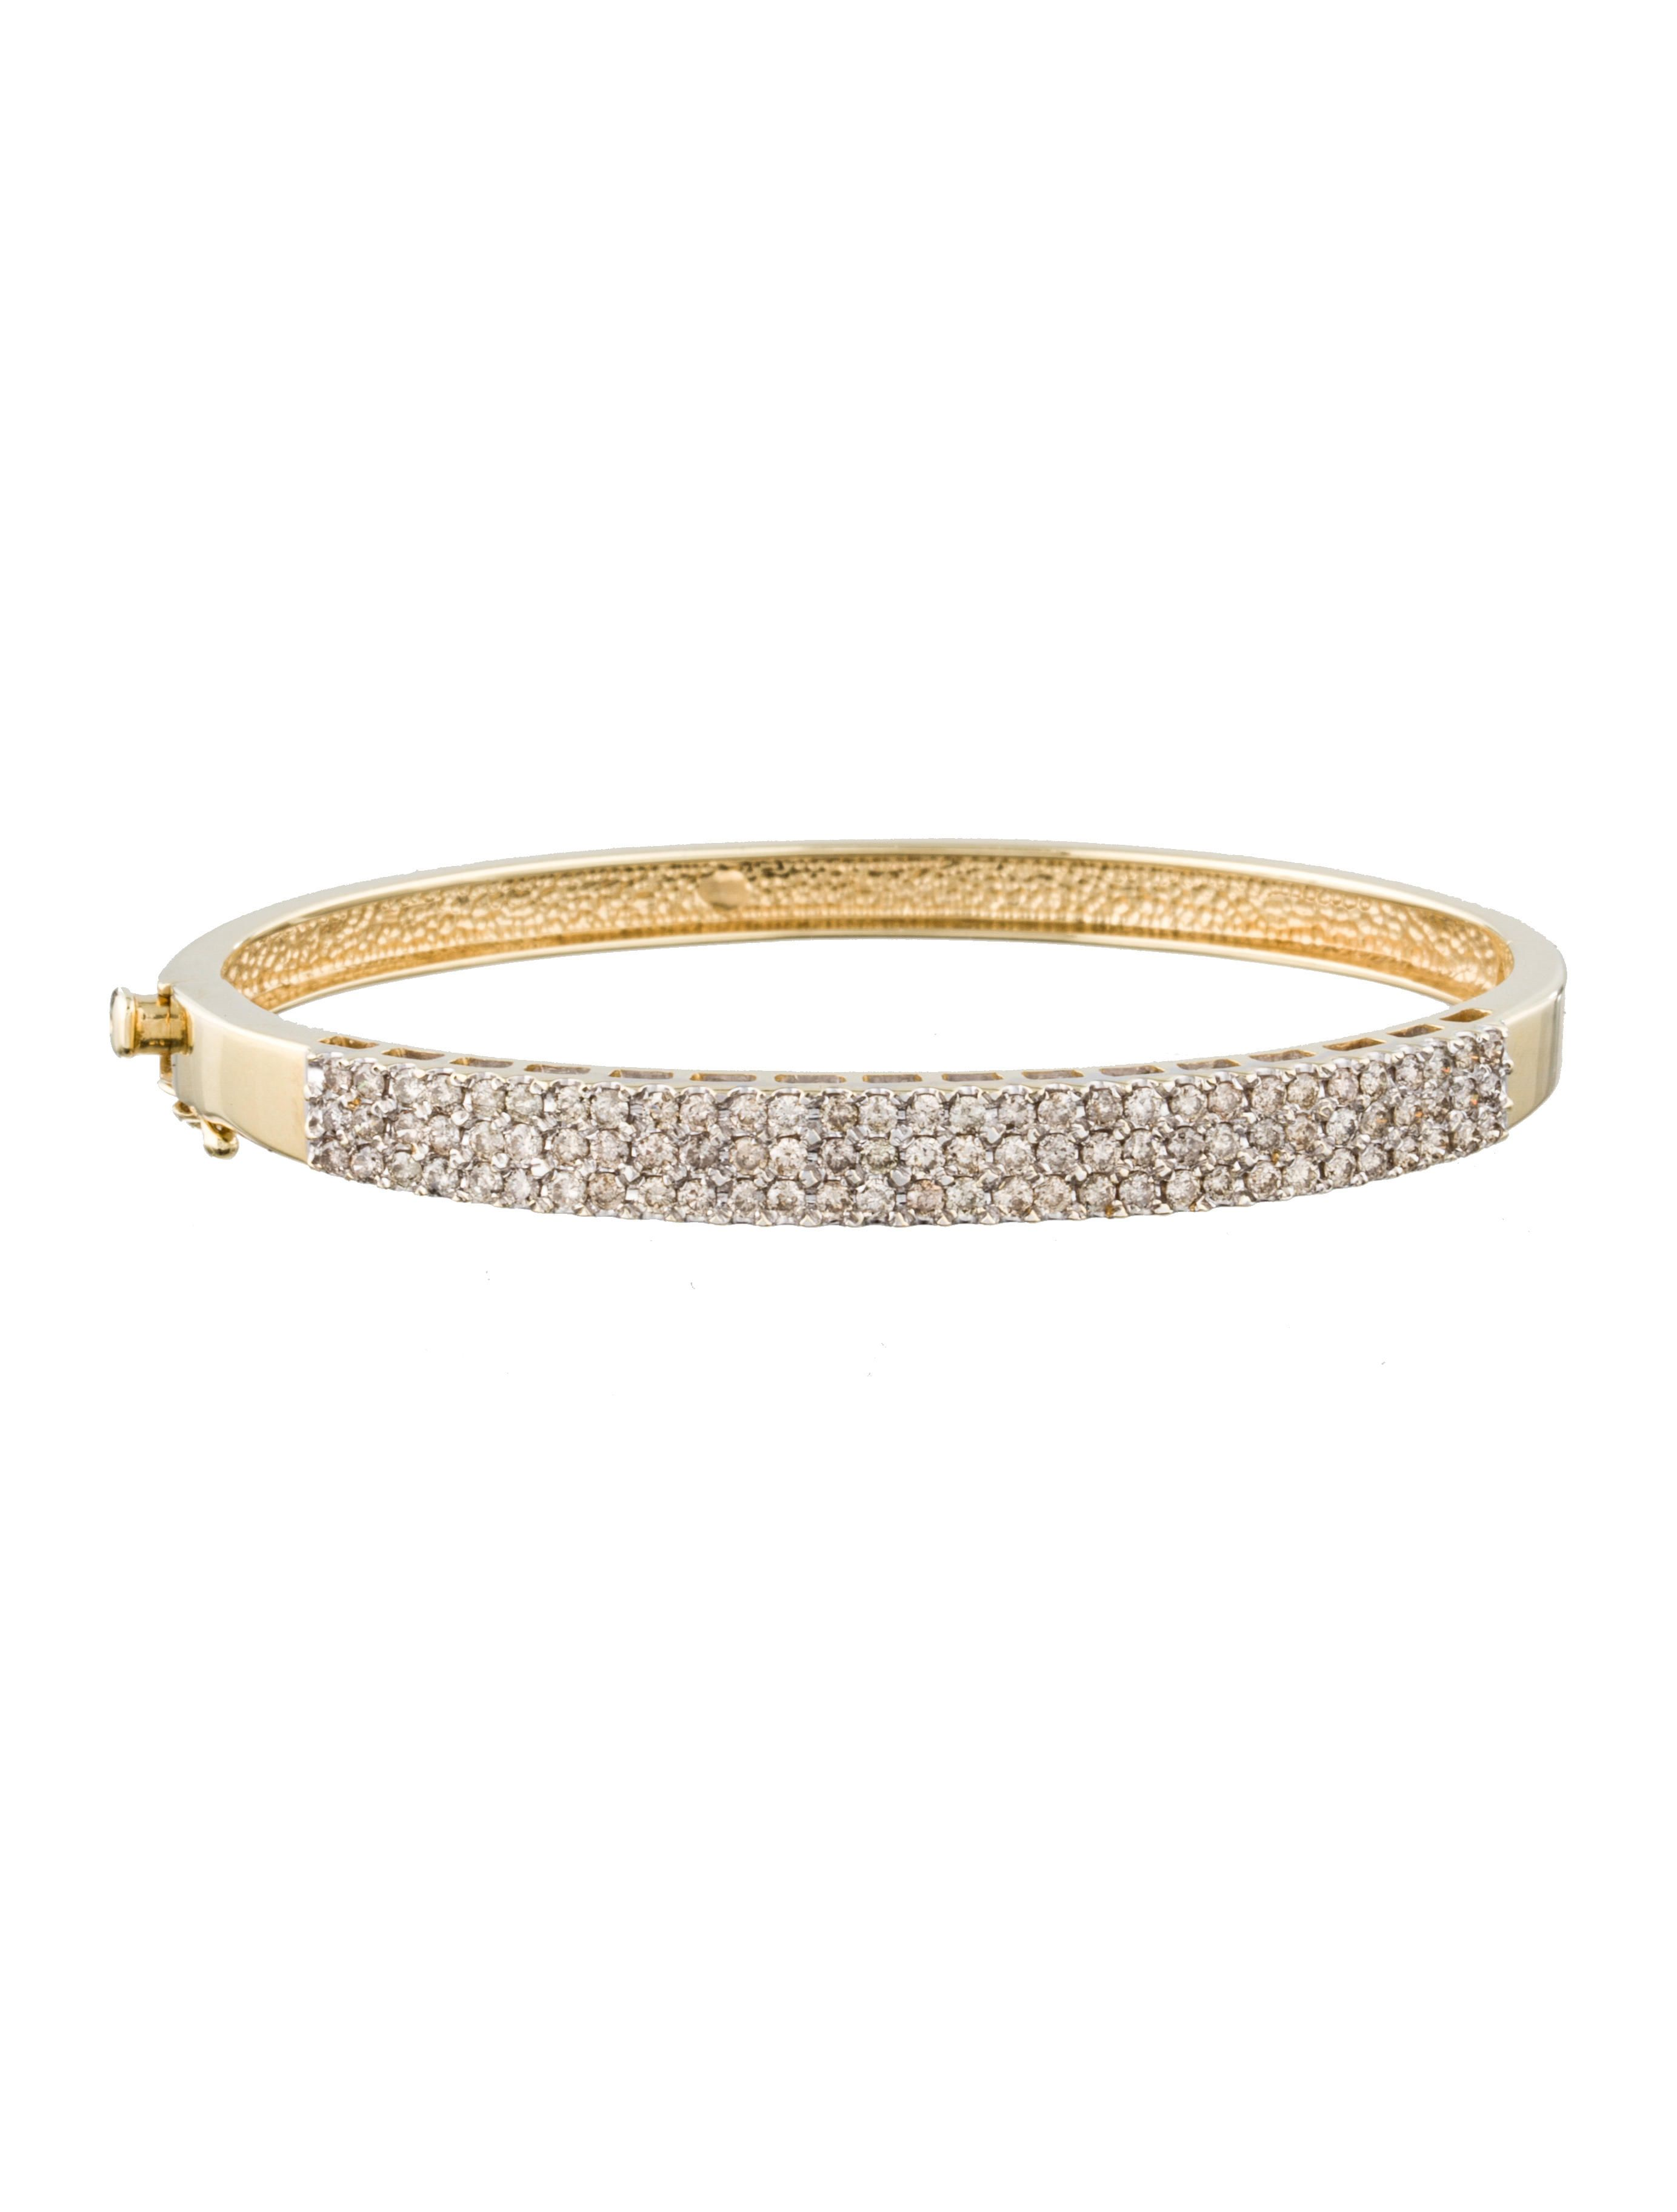 diamond accents bangle bangles gold box closure bracelet pin and yellow with clasp